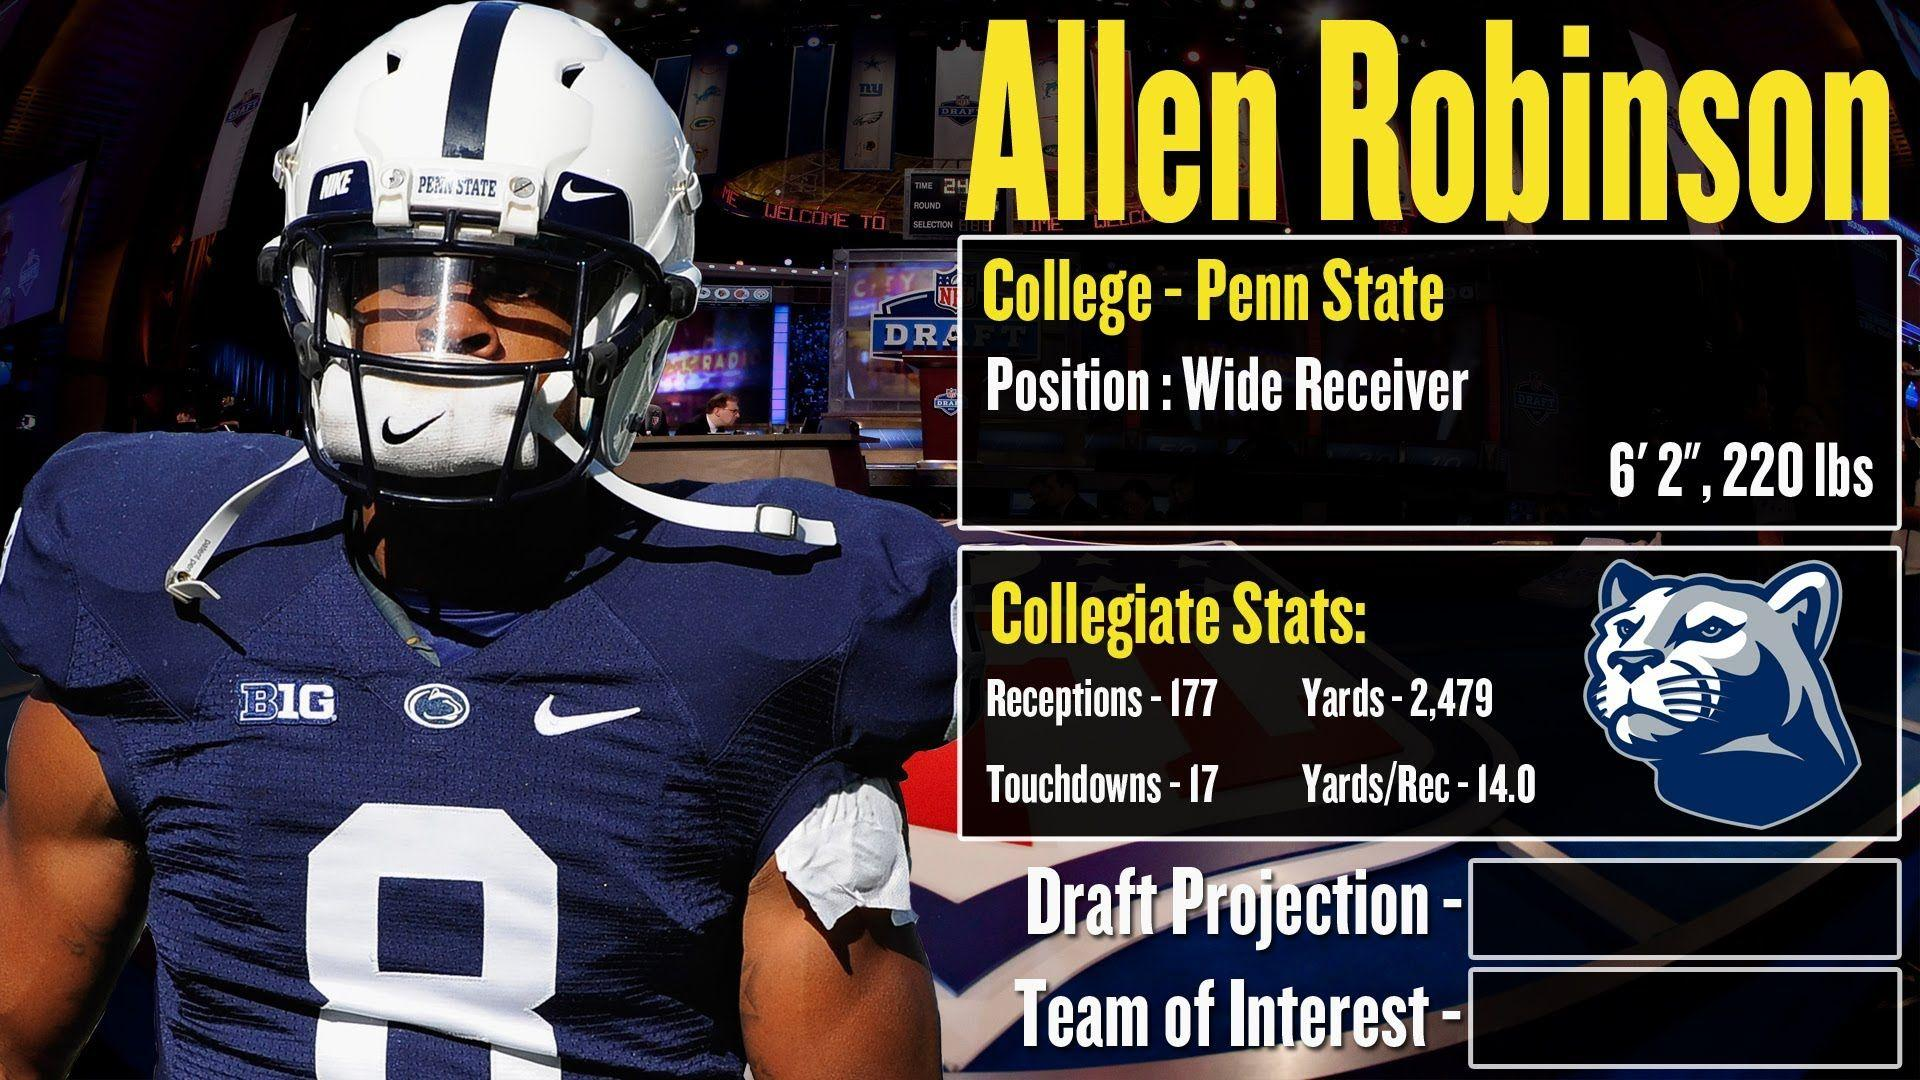 2014 NFL Draft Profile: Allen Robinson - Strengths and Weaknesses ...